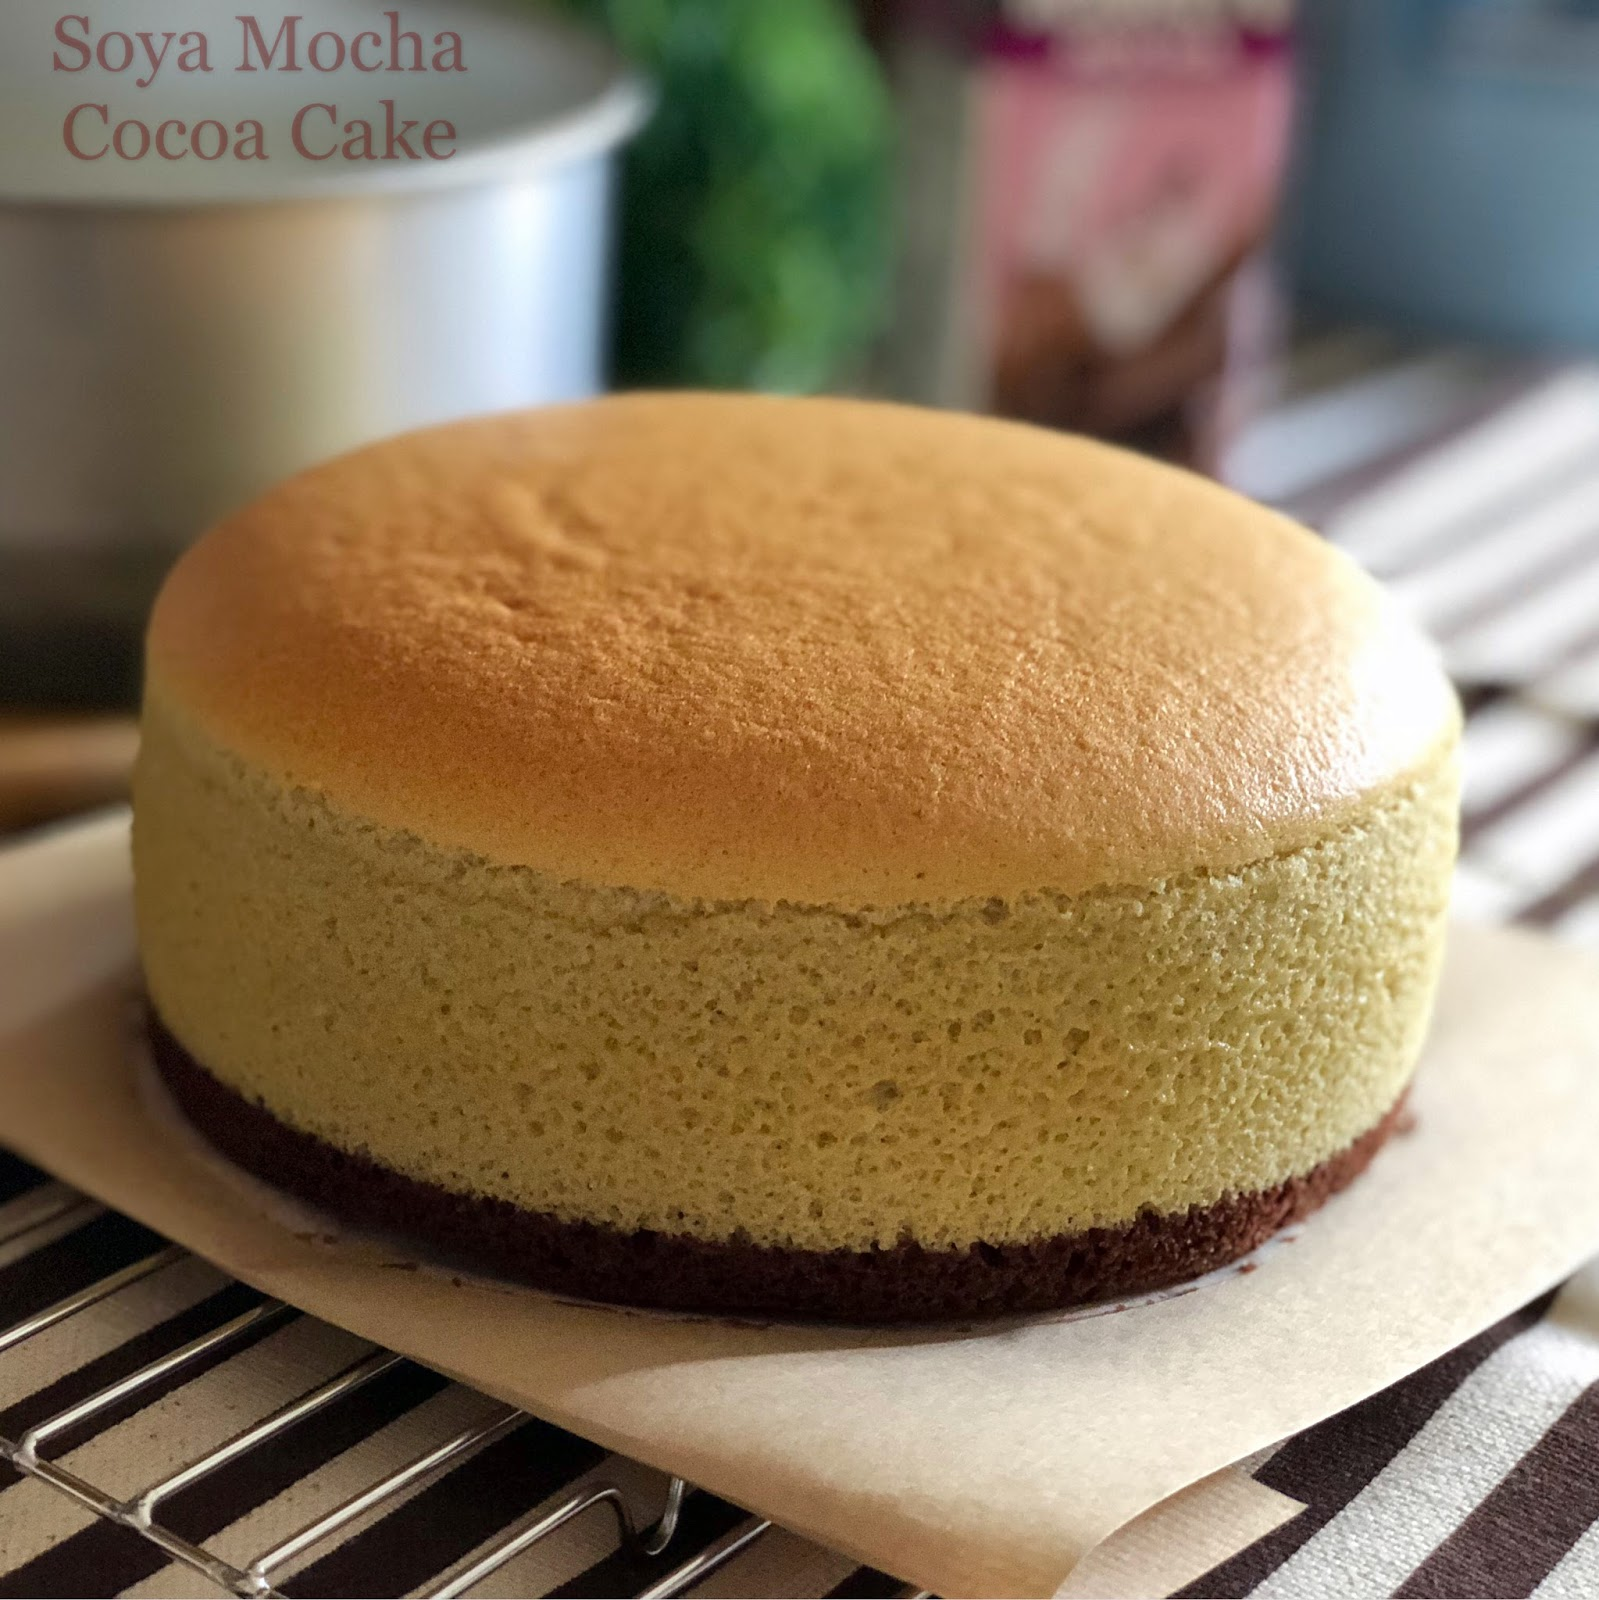 Cakes Using Only Soya Flour